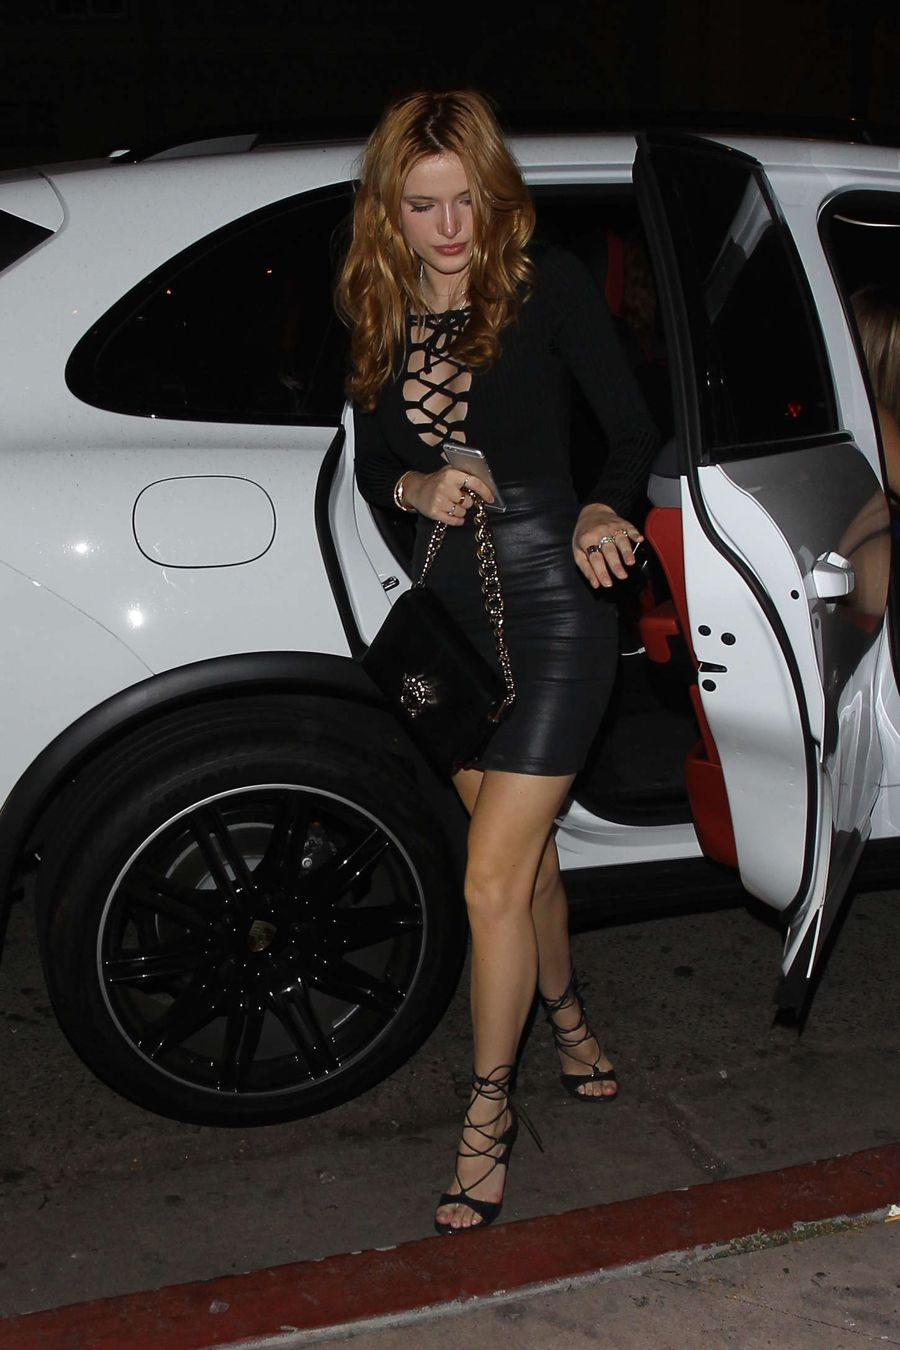 Bella Thorne - The Black Dress for her Birthday